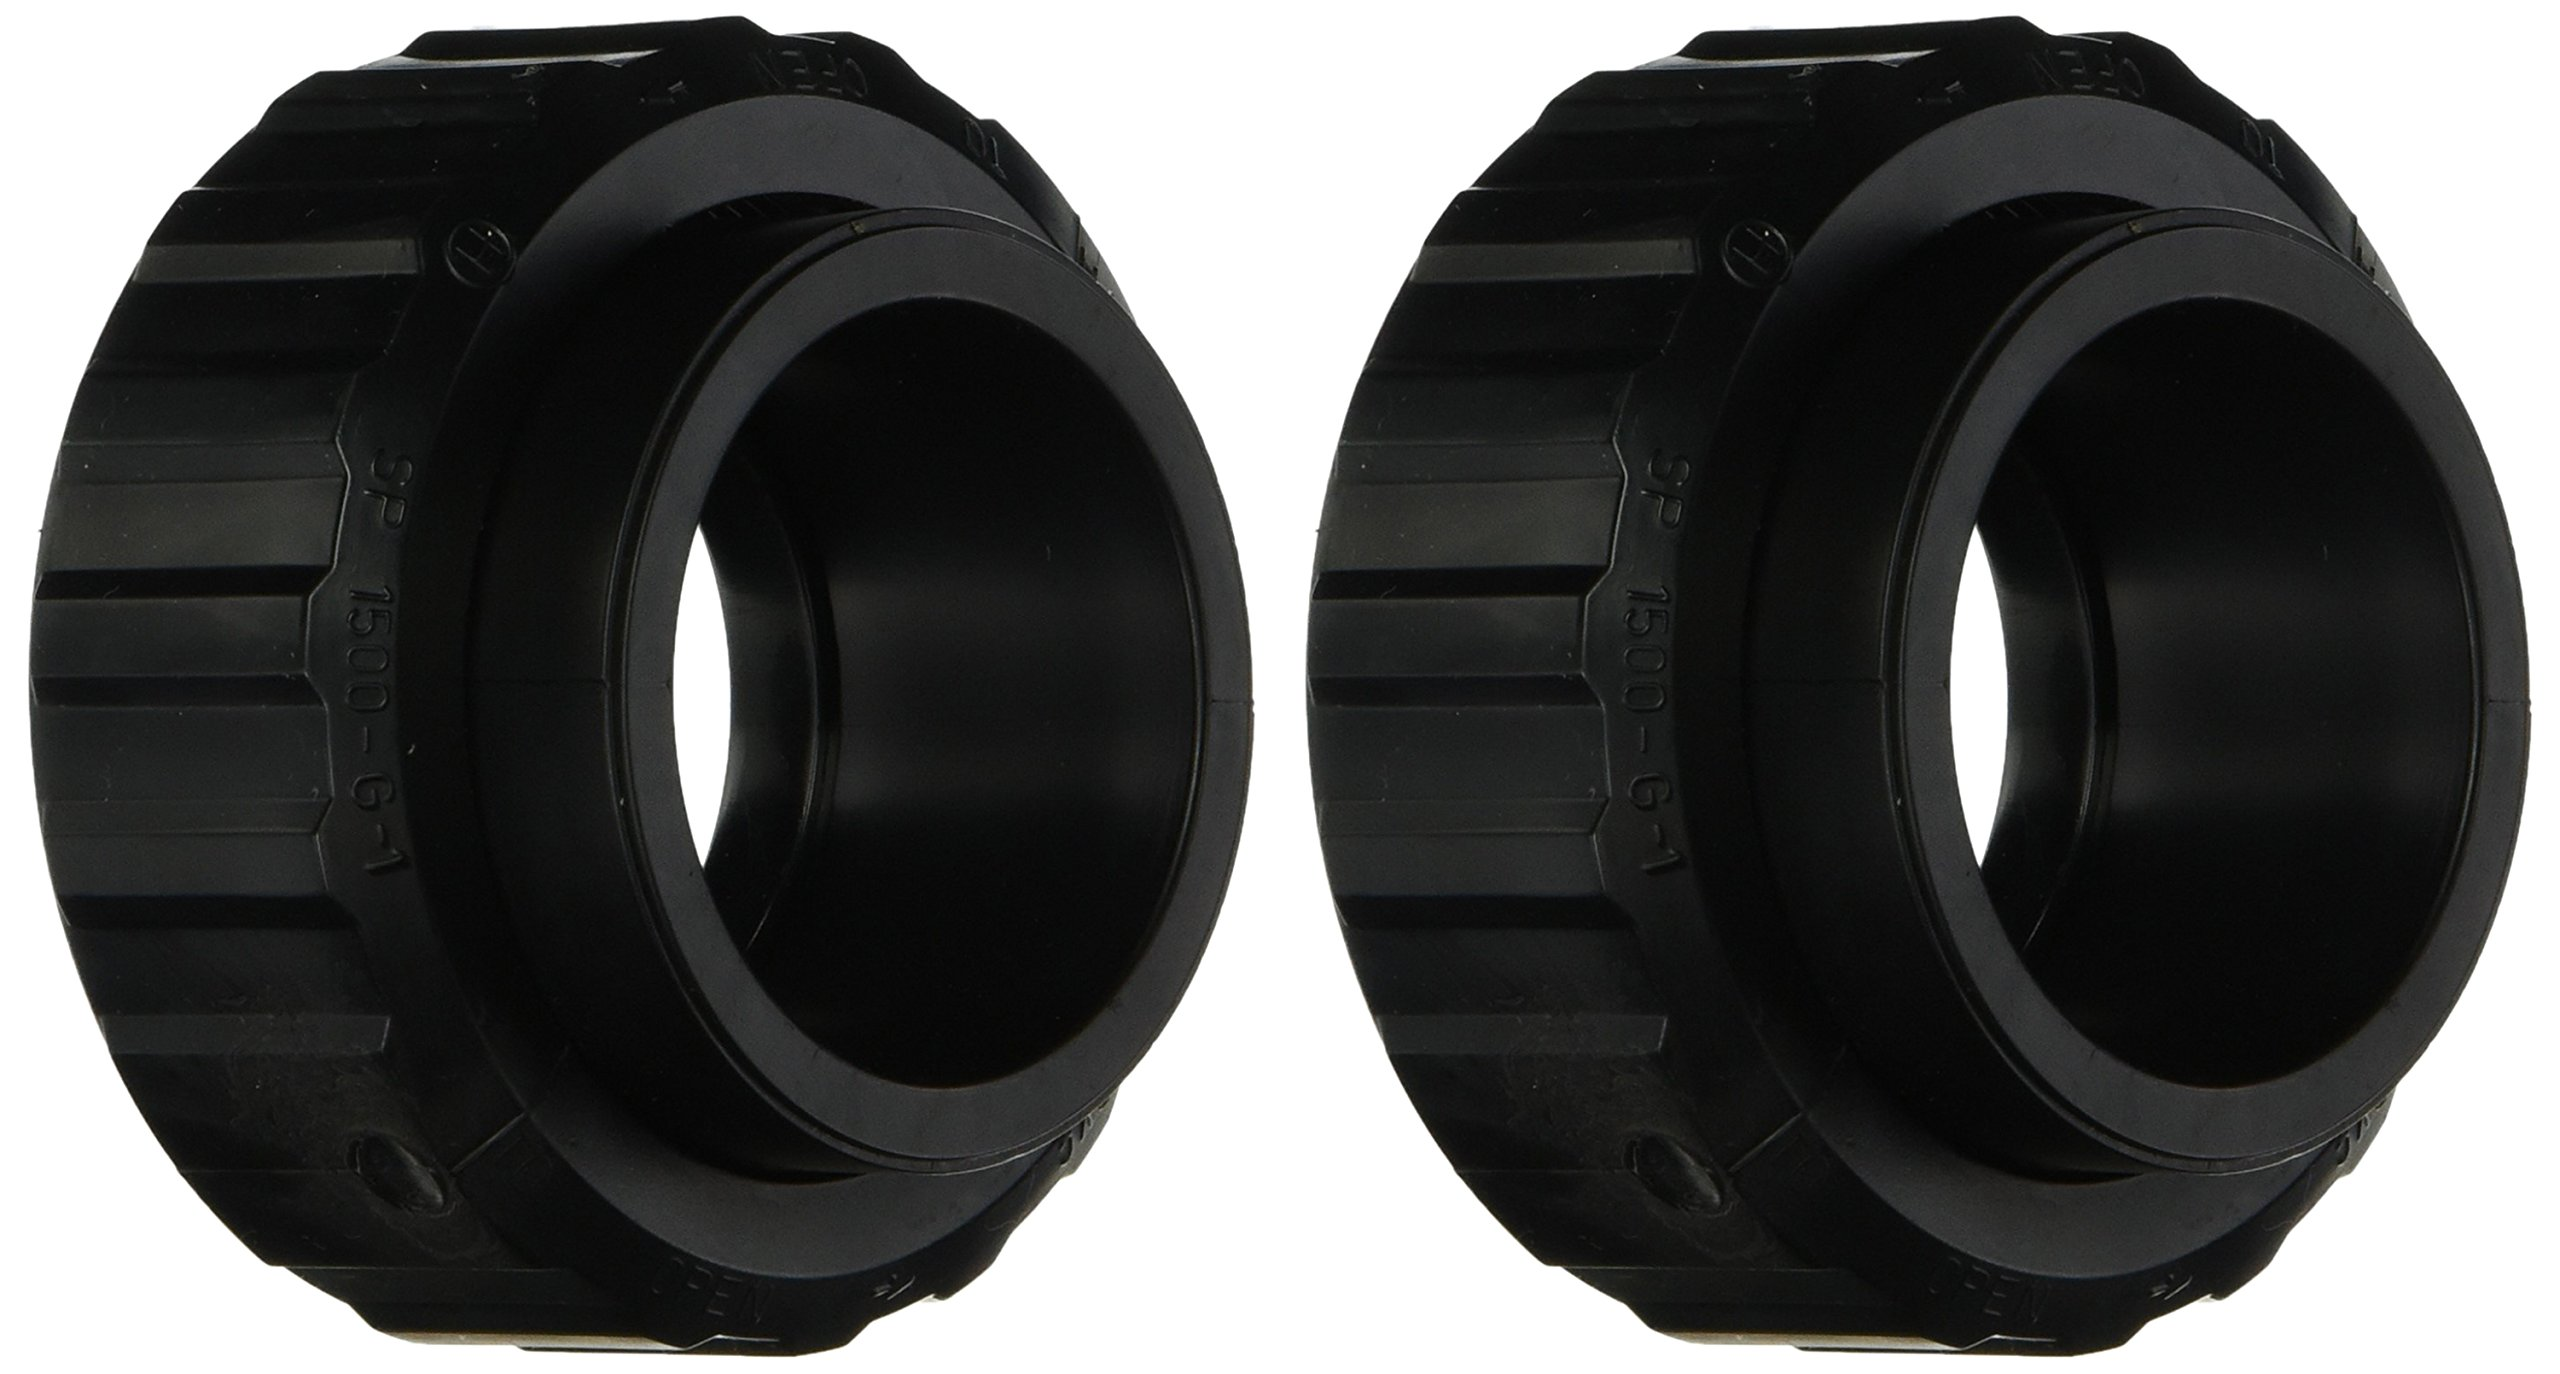 Hayward SP1500UNPAK2C 1-1/2-Inch Socket by 2-Inch SLIP Flush Union Connectors Pak Replacement for select Hayward Pumps/Filters and Chlorine Feeders